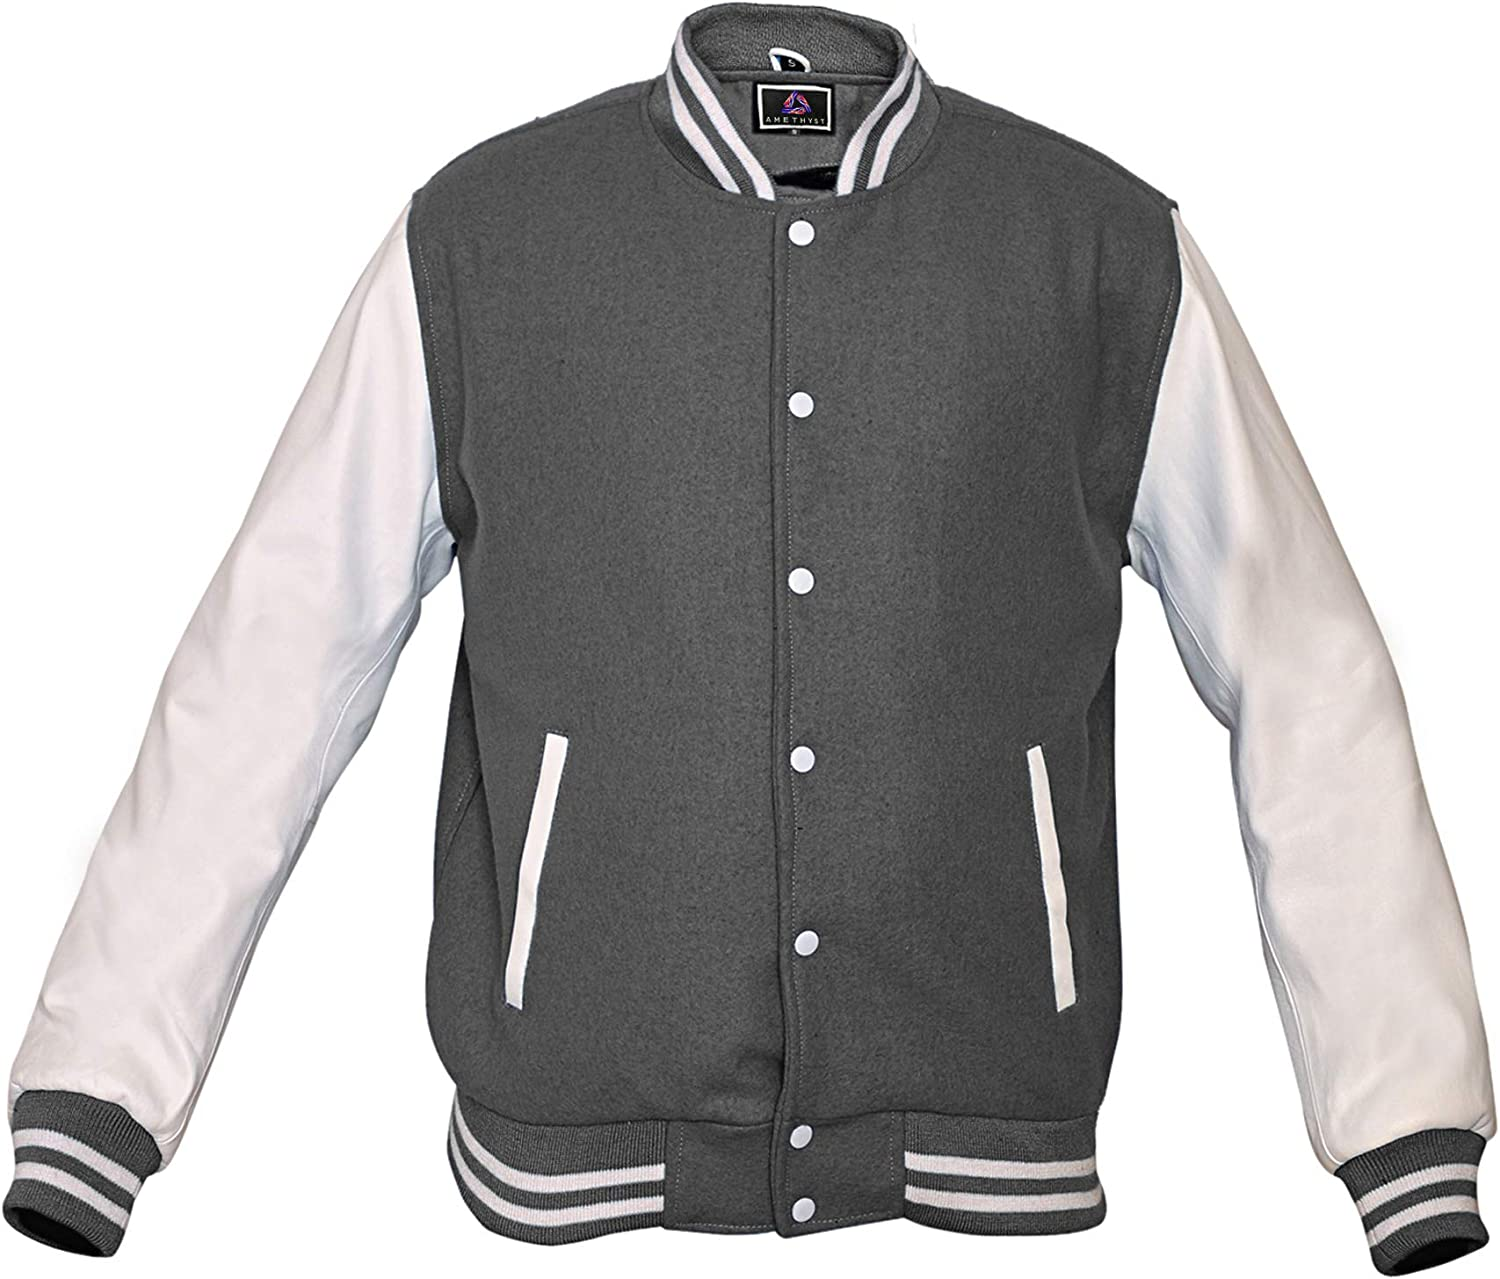 AMETHYST Baseball Varsity College Letterman Jacket, White Leather Sleeves & Gray Wool Body, Size X-Small